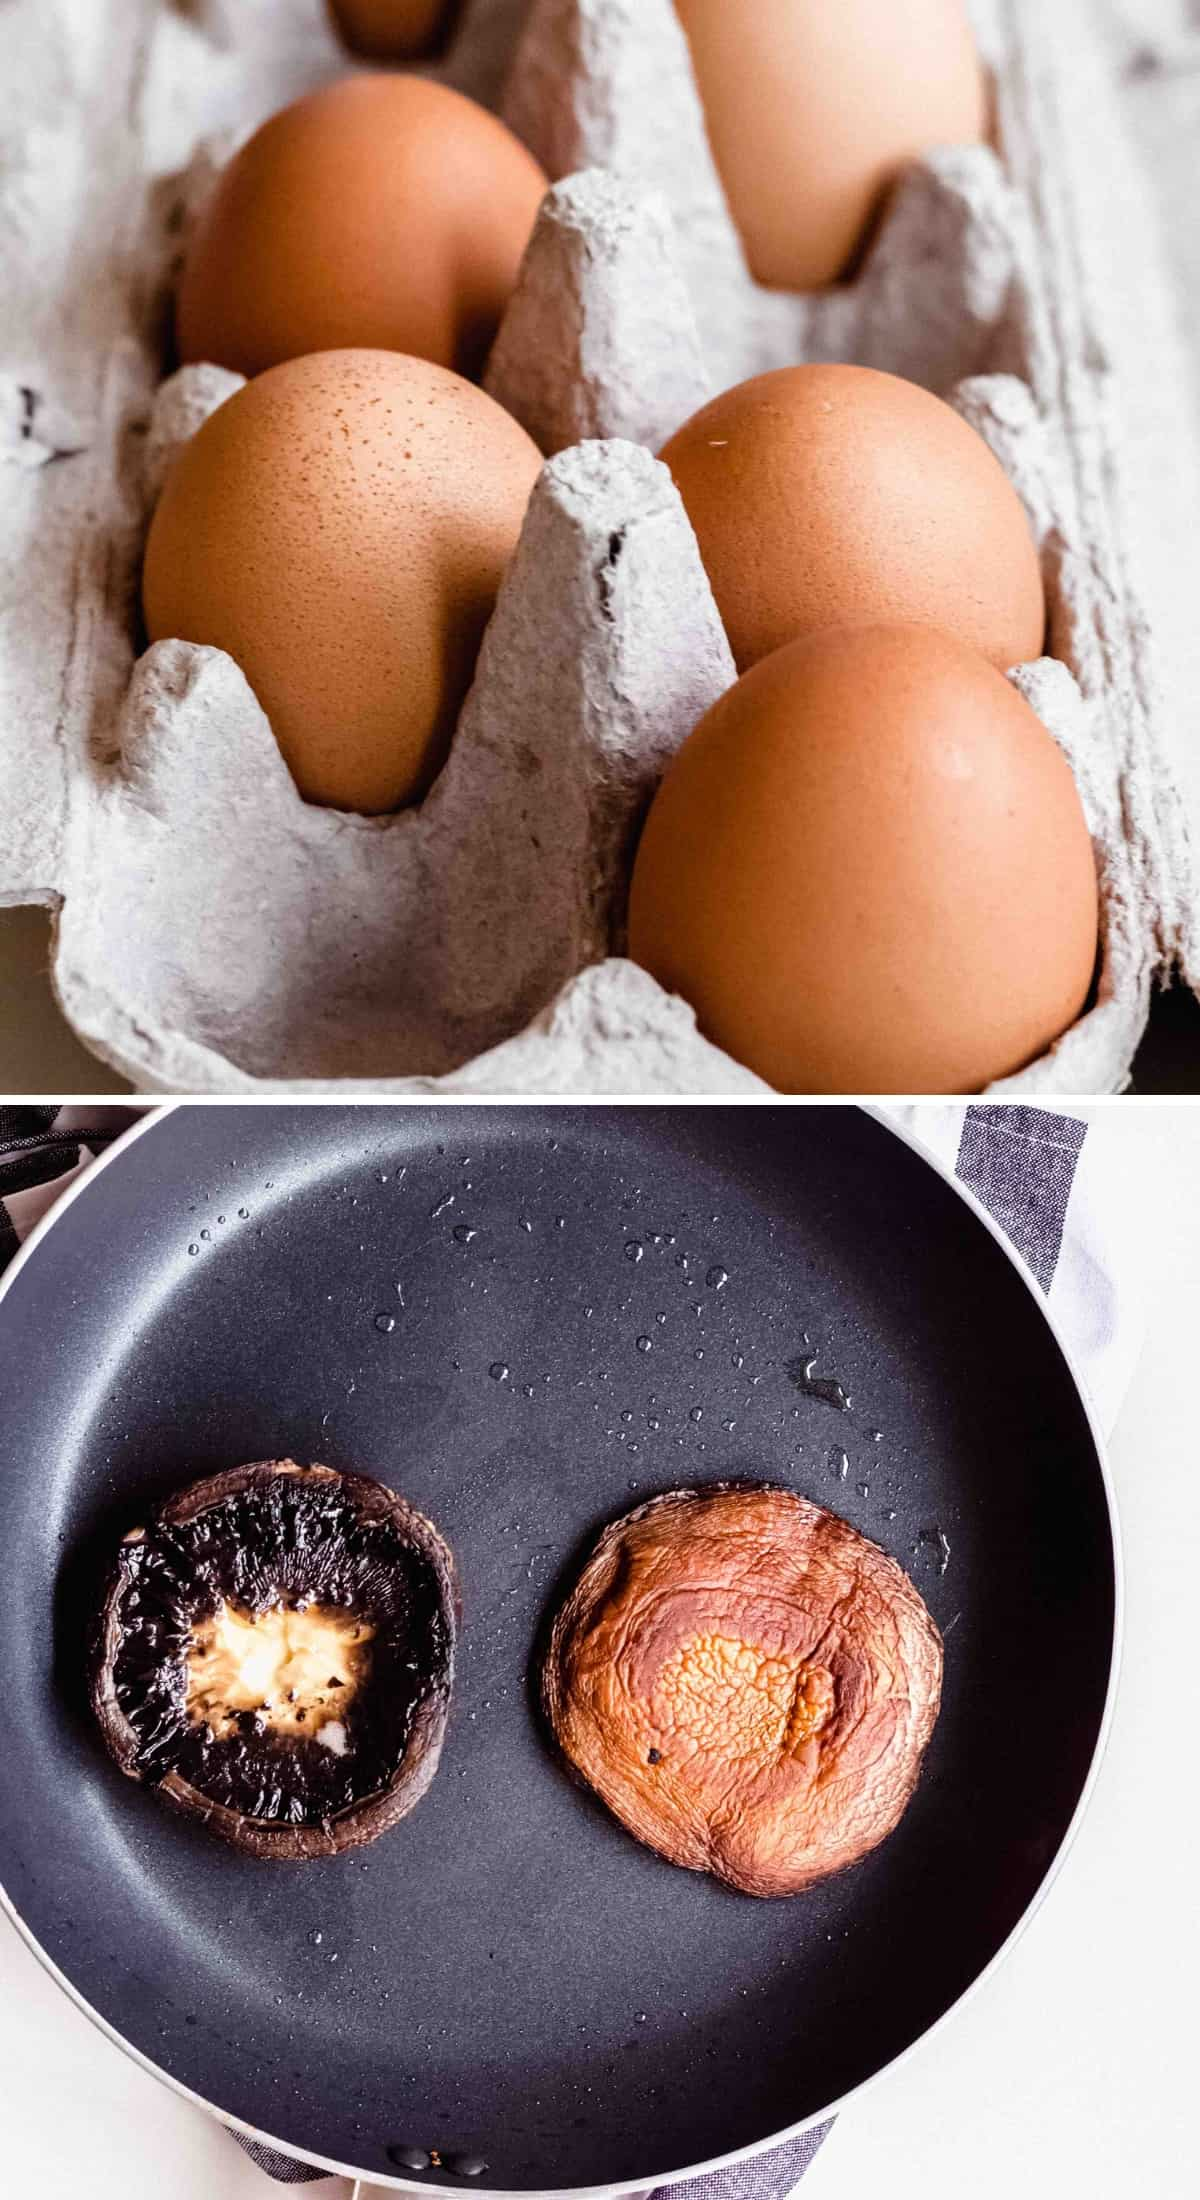 photo with eggs in a carton and mushrooms on a frying pan